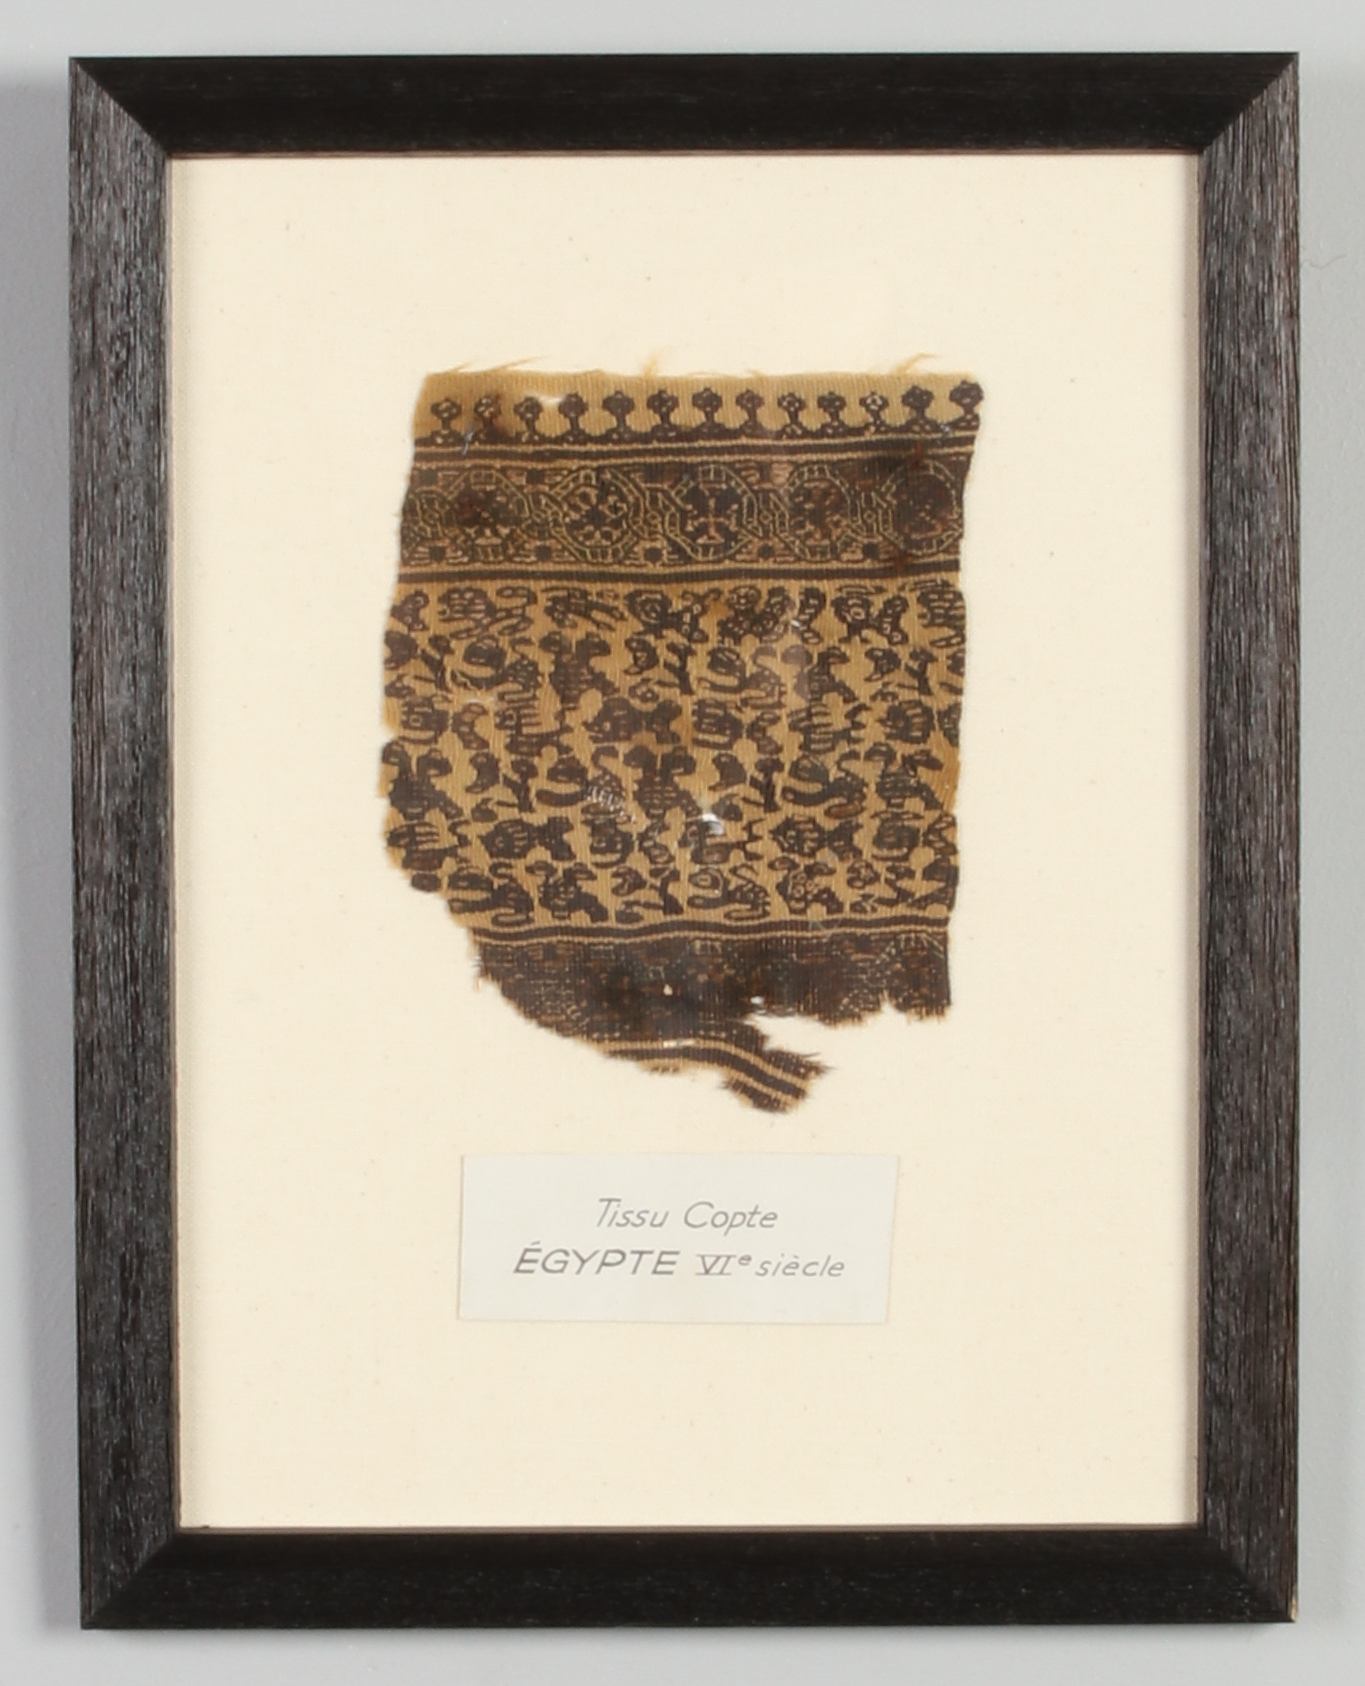 Lot 476 - A framed fragment of Coptic textile, Egypt 6th century. Label reads Tissu Copte, Egypte VIe